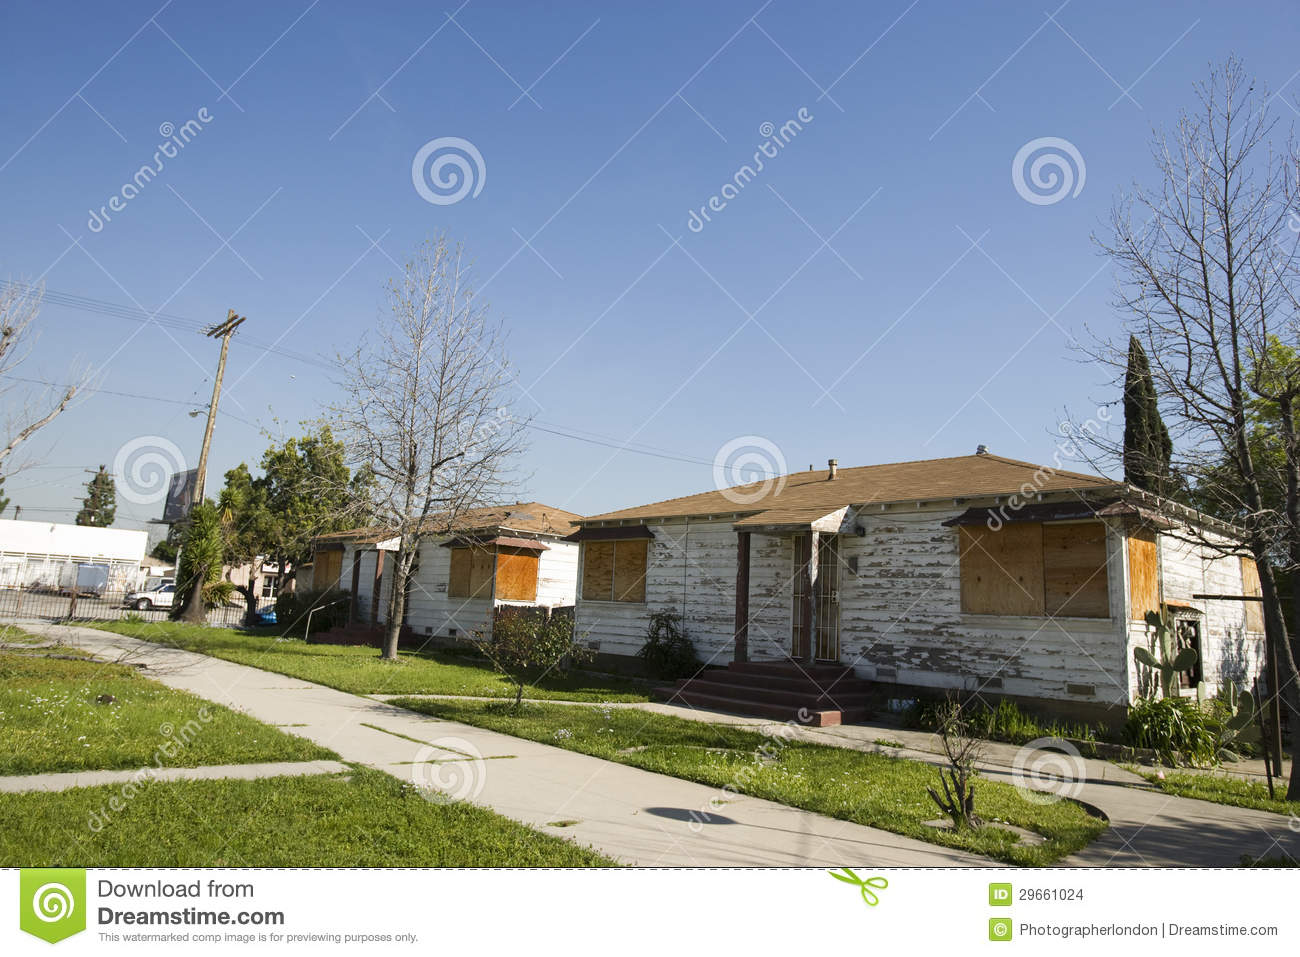 Boarded Up Structure In Winter Stock Photography